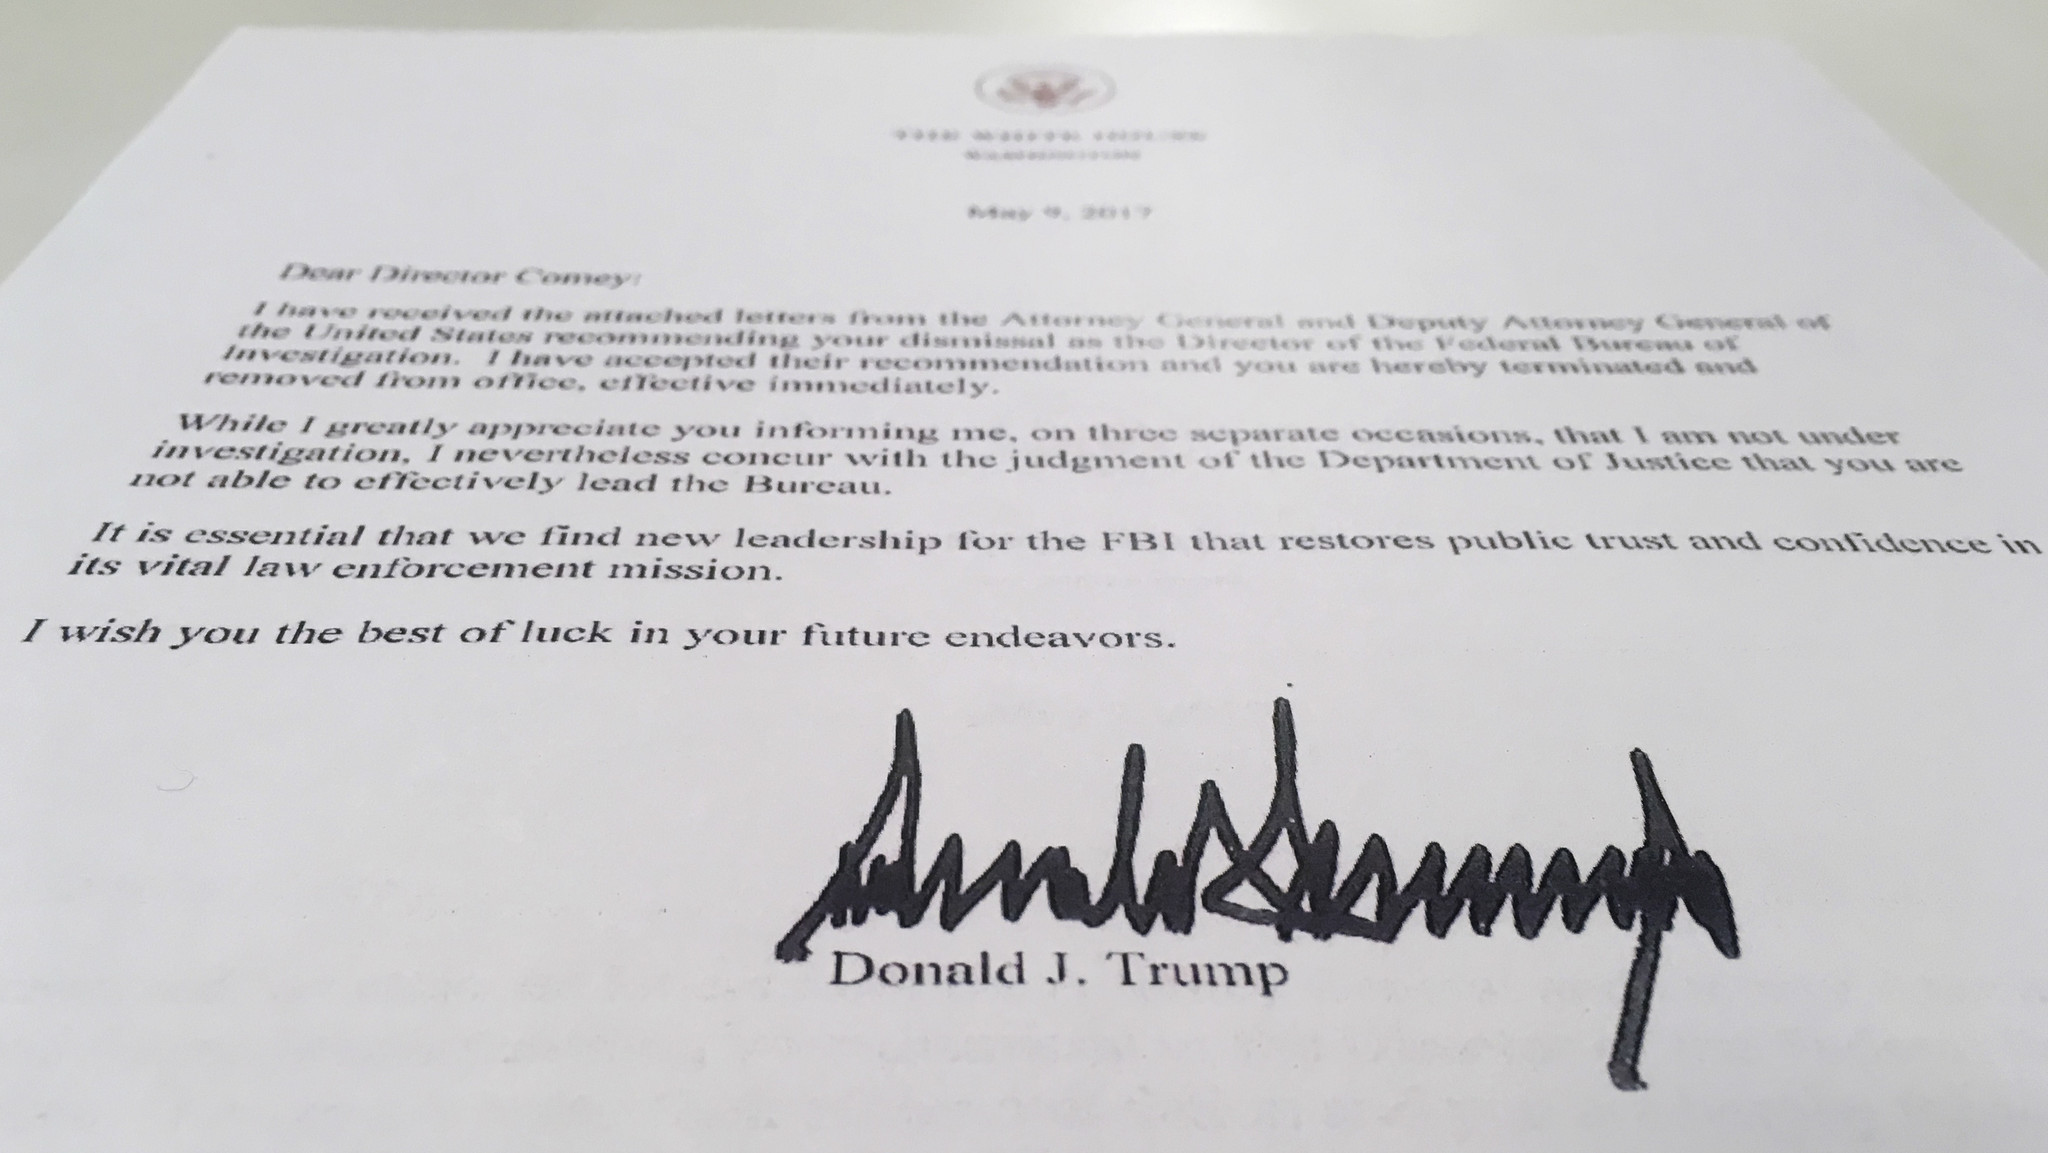 The termination letter from President Trump to FBI Director James B. Comey.